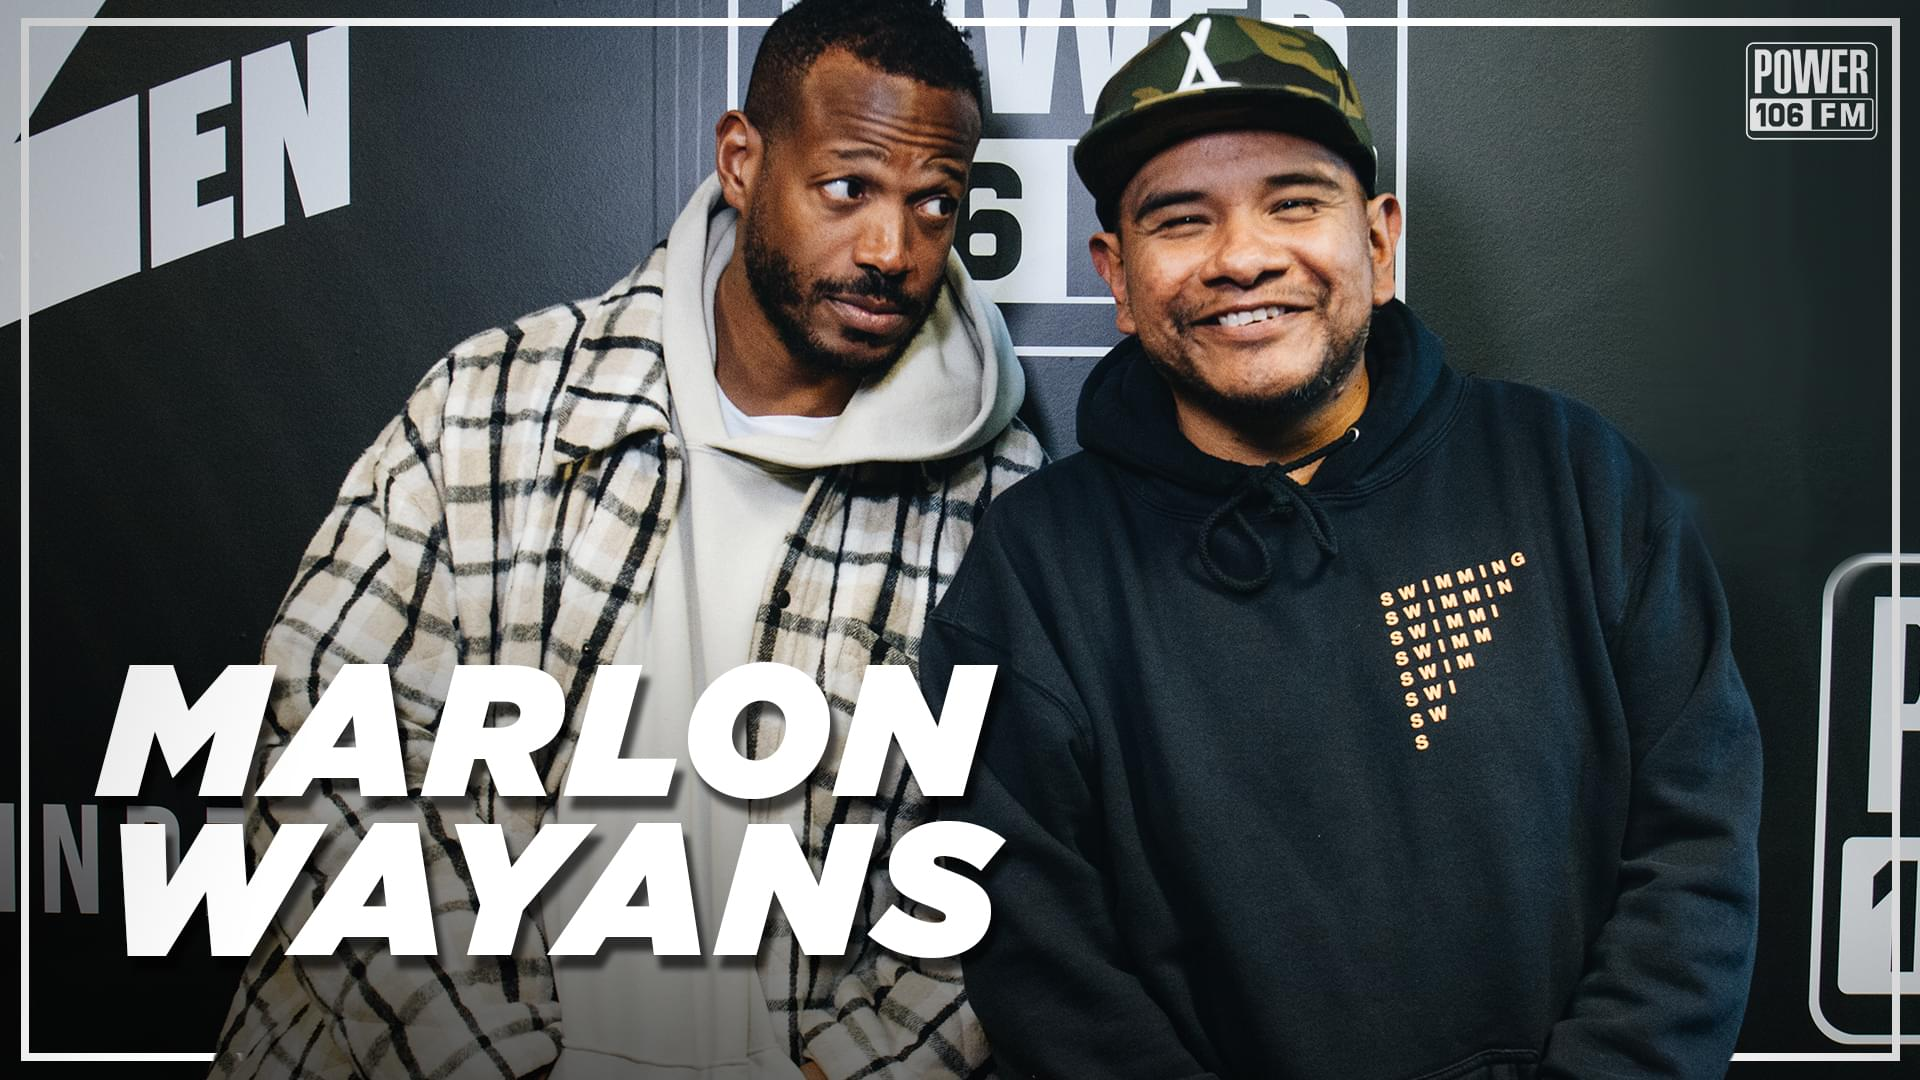 Marlon Wayans Says Kevin Hart Should Have Hosted The Oscars + Calls Out Online Trolls